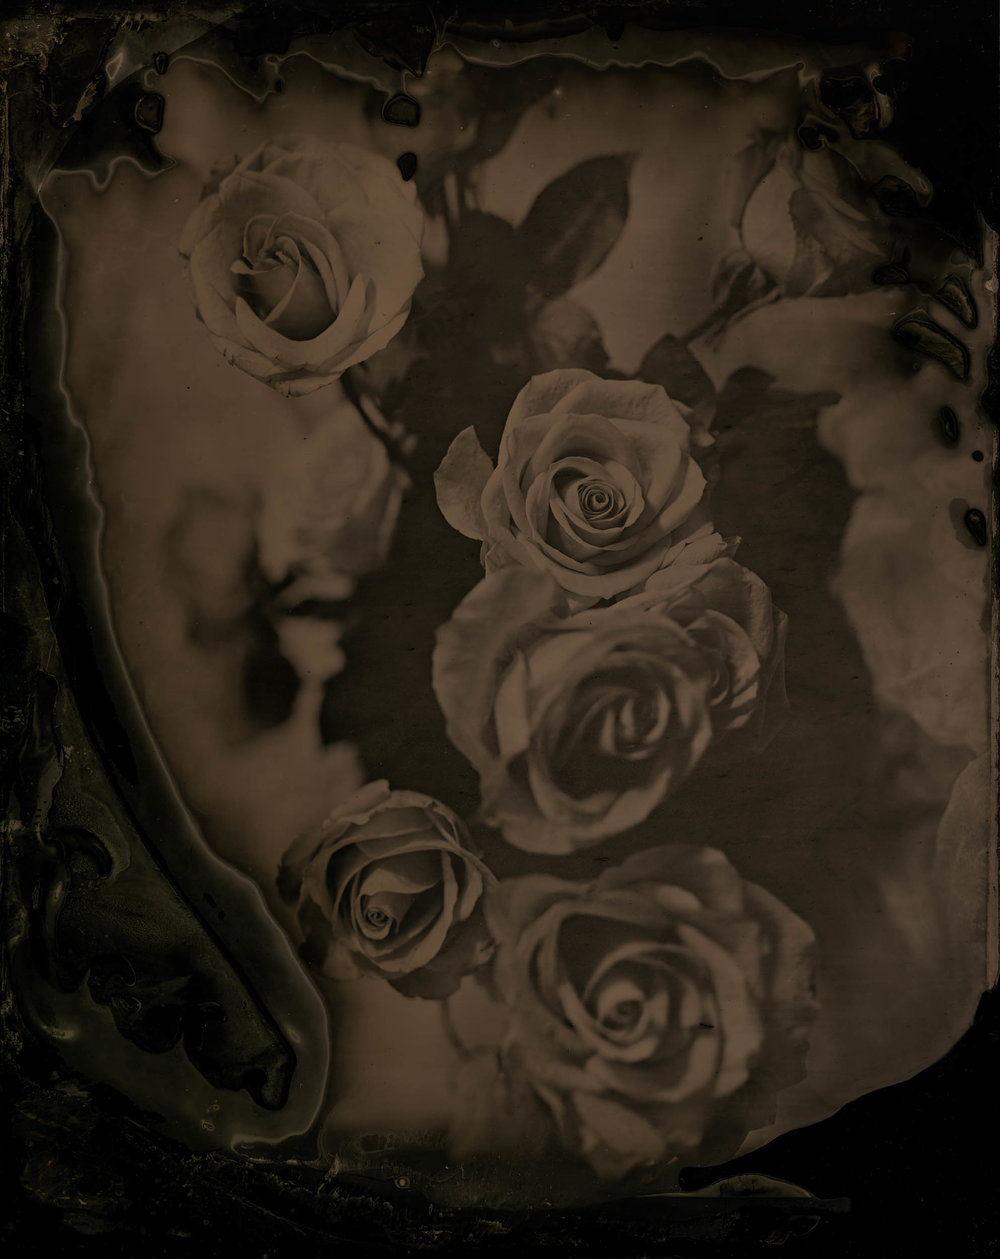 The Roses, ambrotype original, archival pigment print, 40 in. x 50 in., 2018